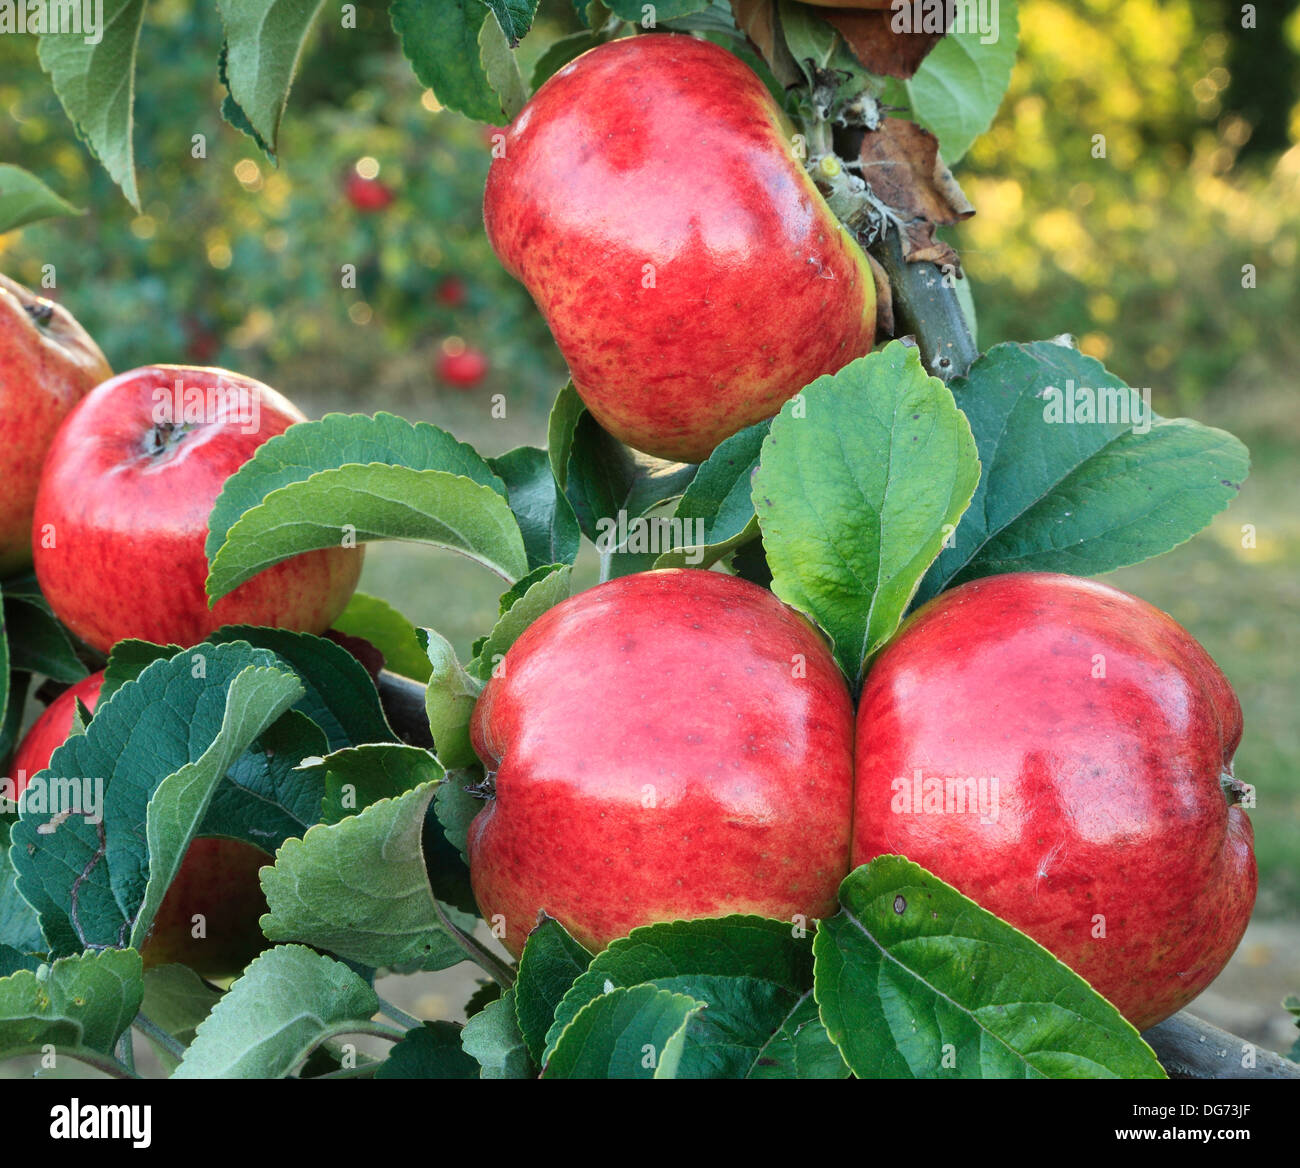 Apple 'Jolly Miller', malus domestica, apples variety varieties growing on tree Norfolk England - Stock Image